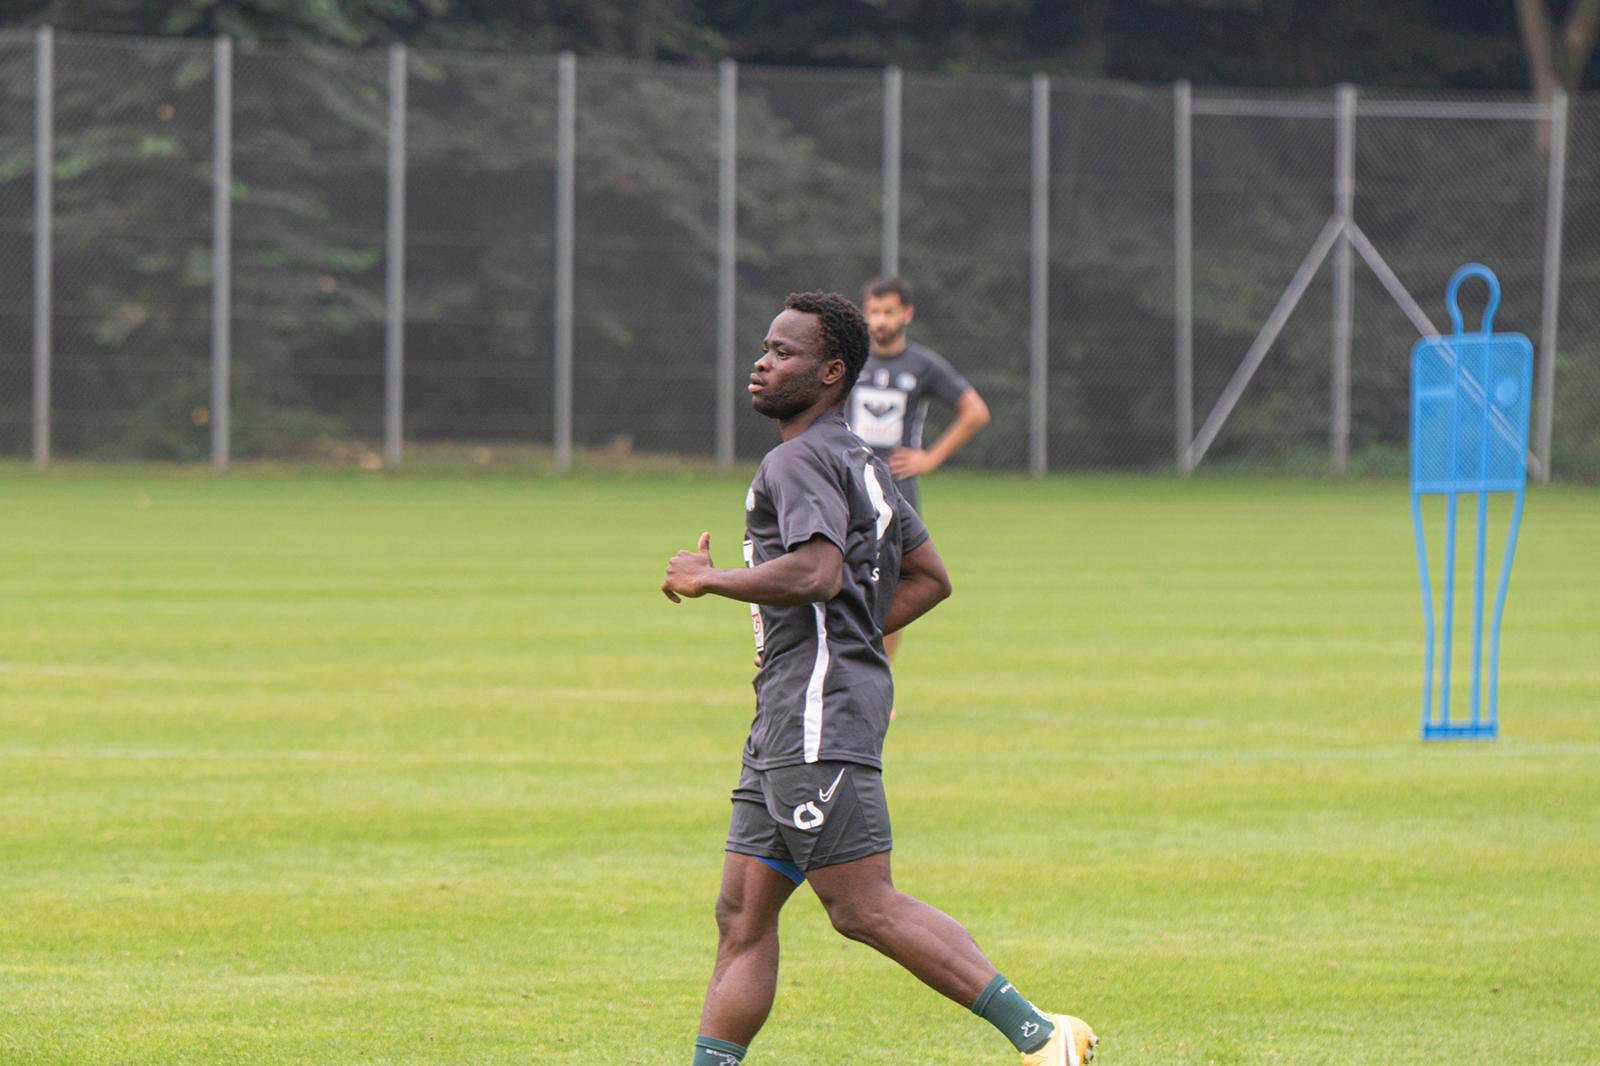 Clinton Antwi ready to work hard at Esbjerg fB to help club